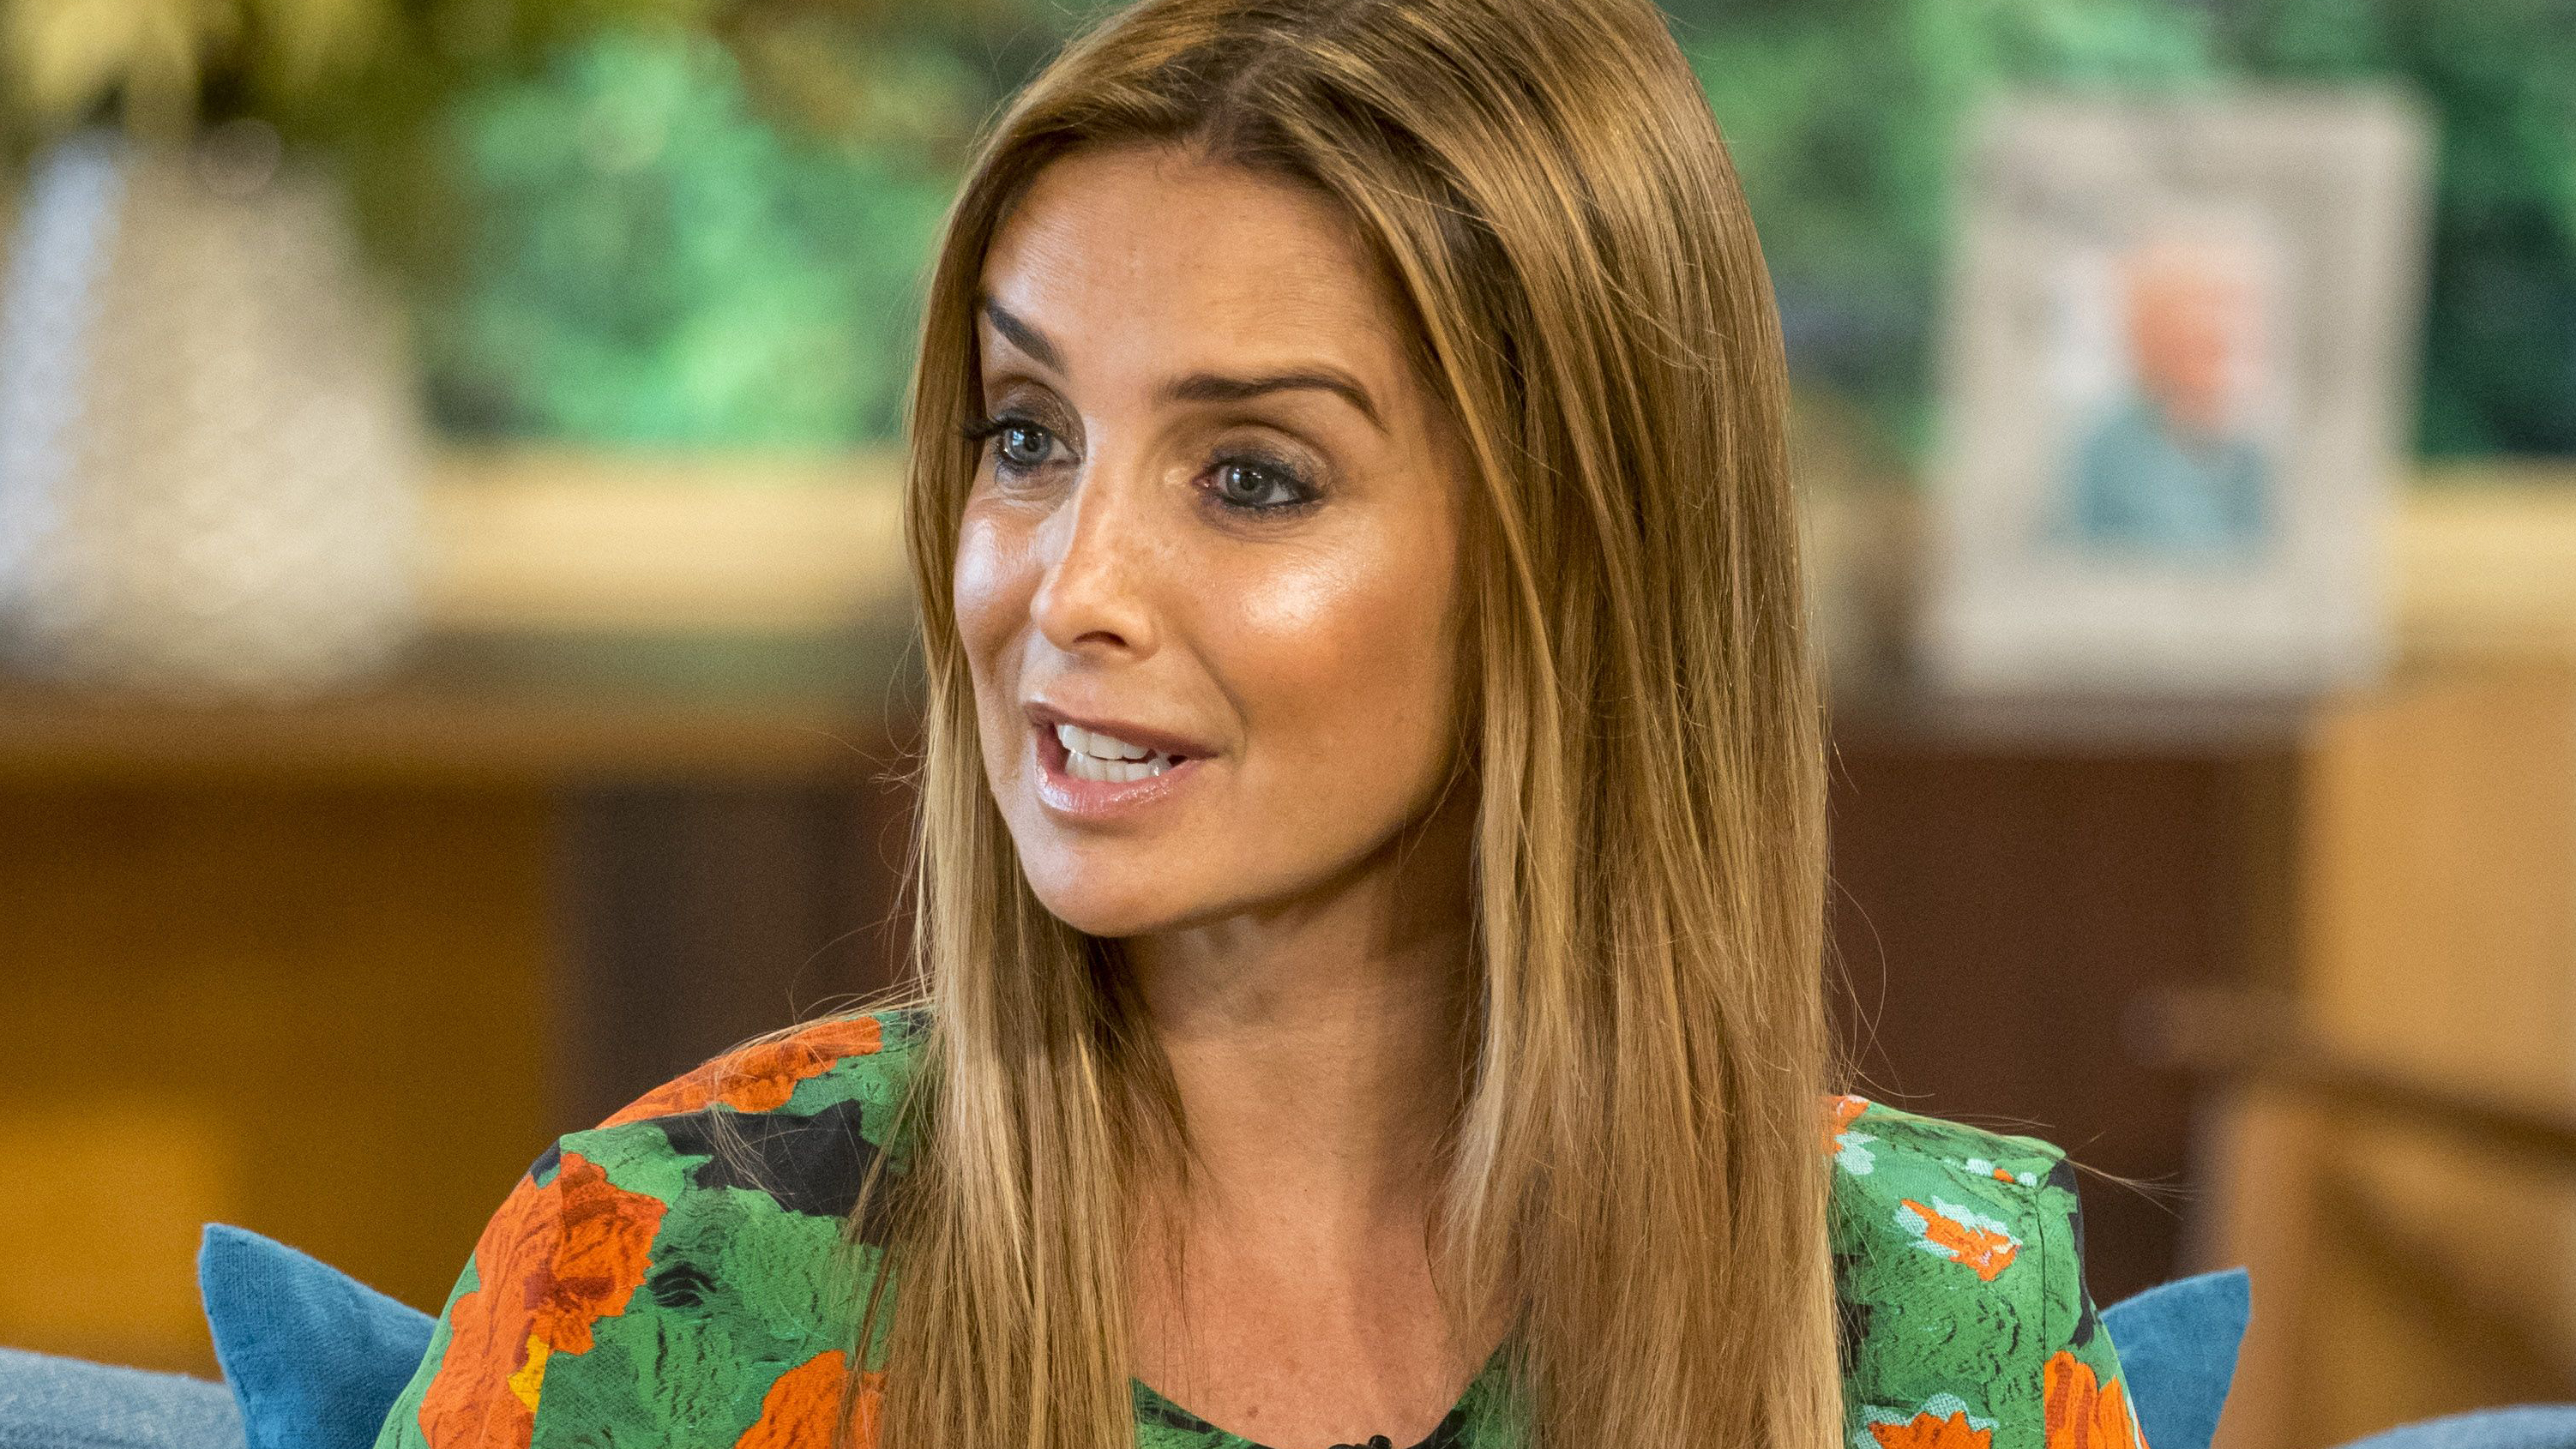 Louise Redknapp nudes (64 pictures), pictures Paparazzi, YouTube, underwear 2015